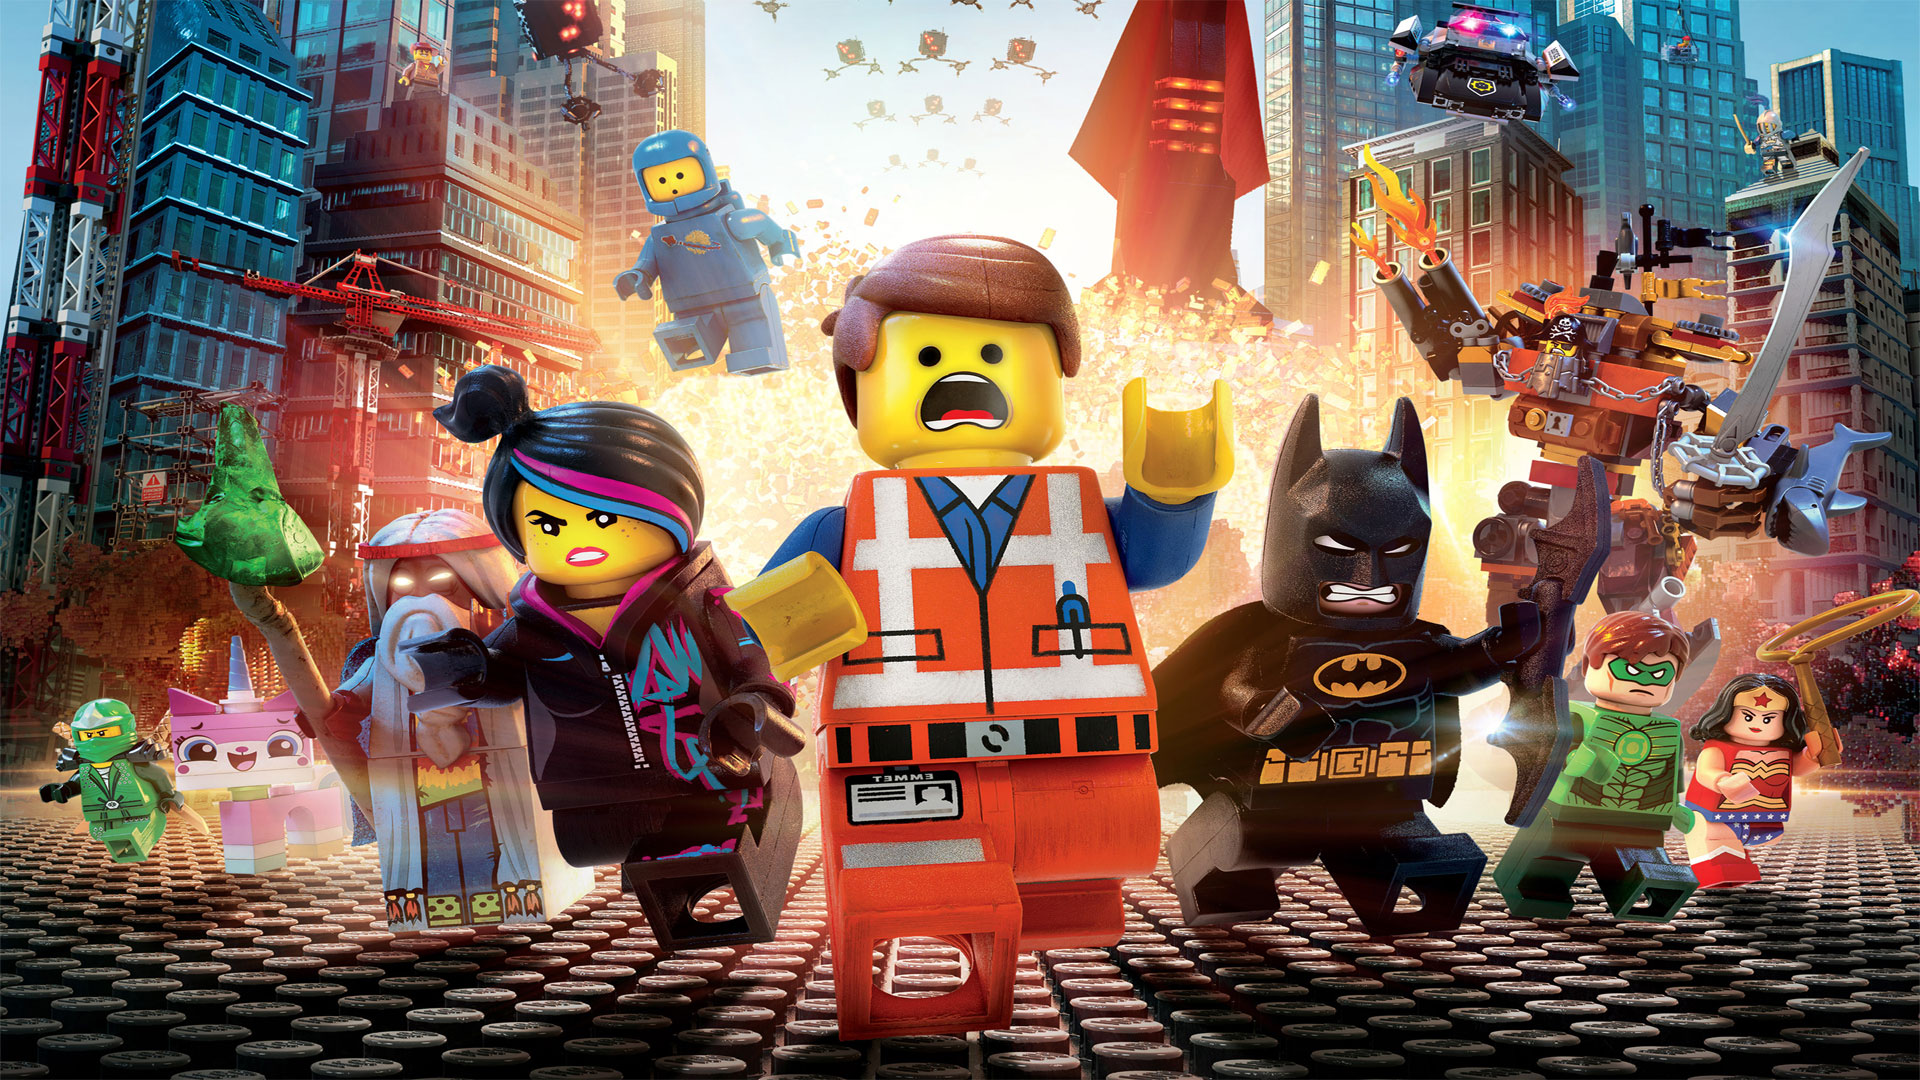 Pictures From The Lego Movie: Motion Picture Association Report: Latinos Love Movies